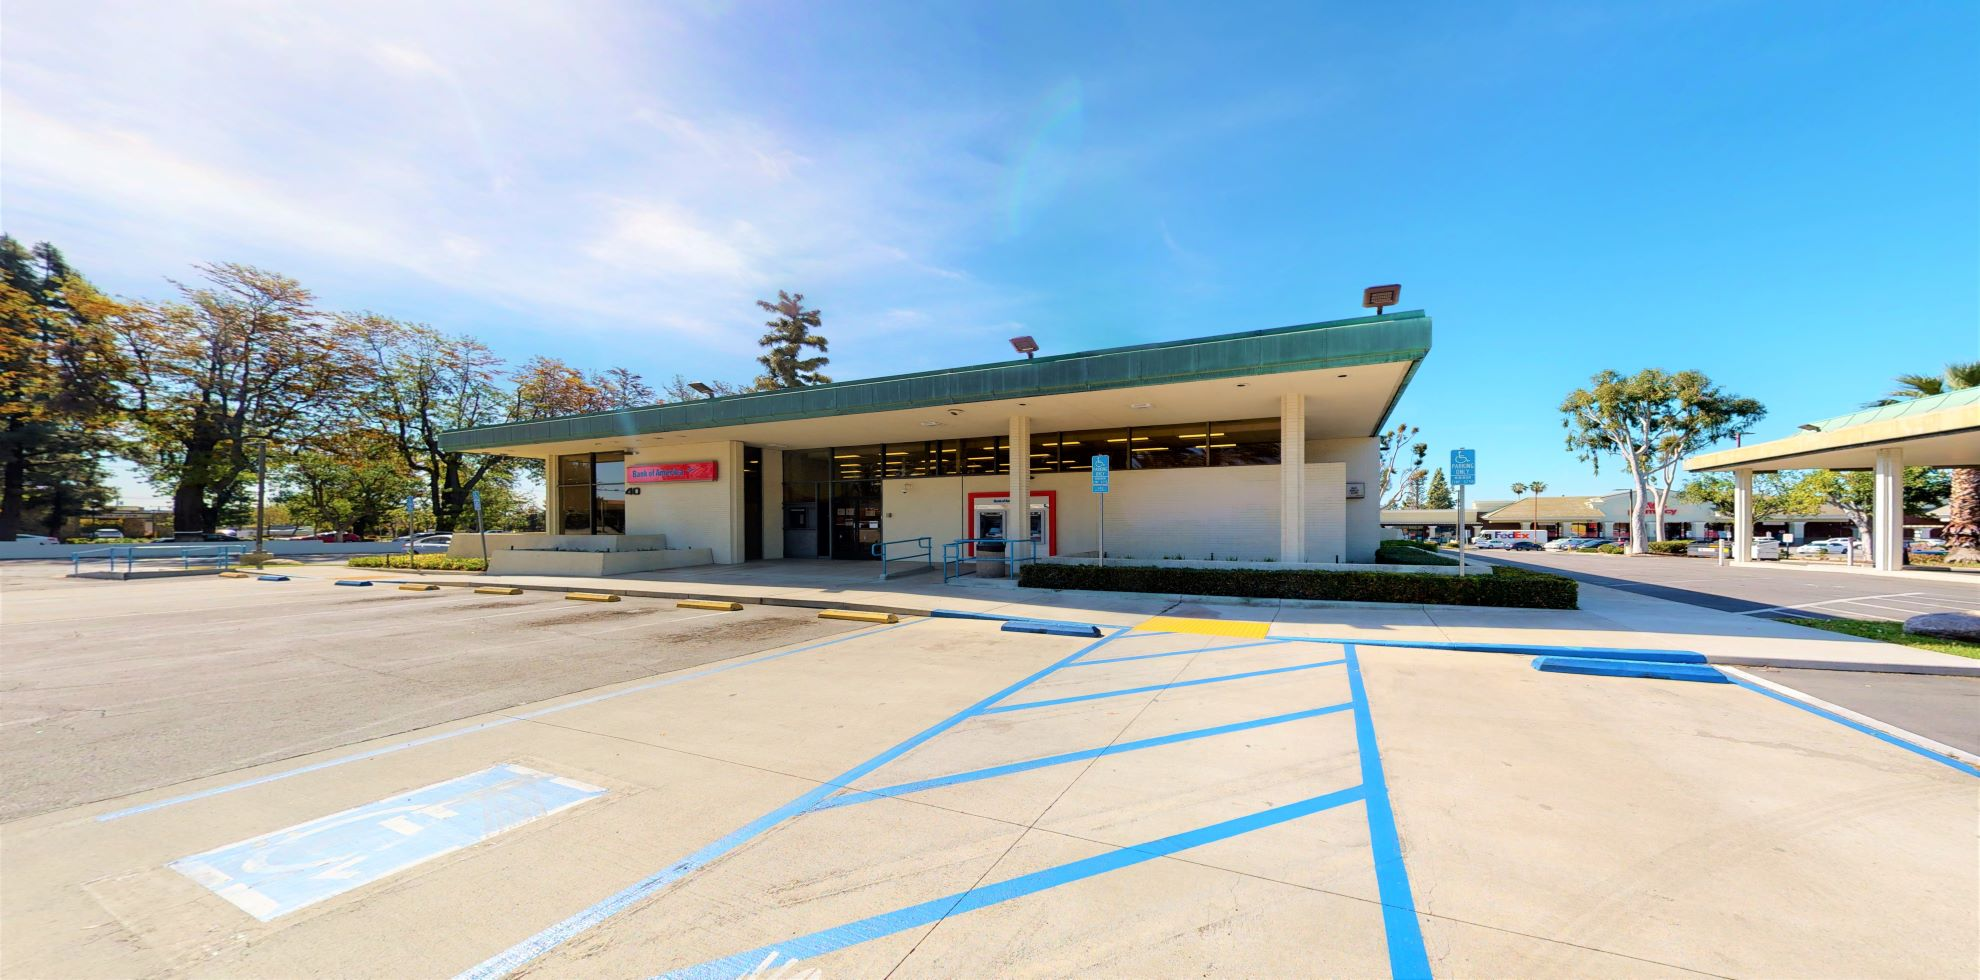 Bank of America financial center with drive-thru ATM   40 W Foothill Blvd, Upland, CA 91786